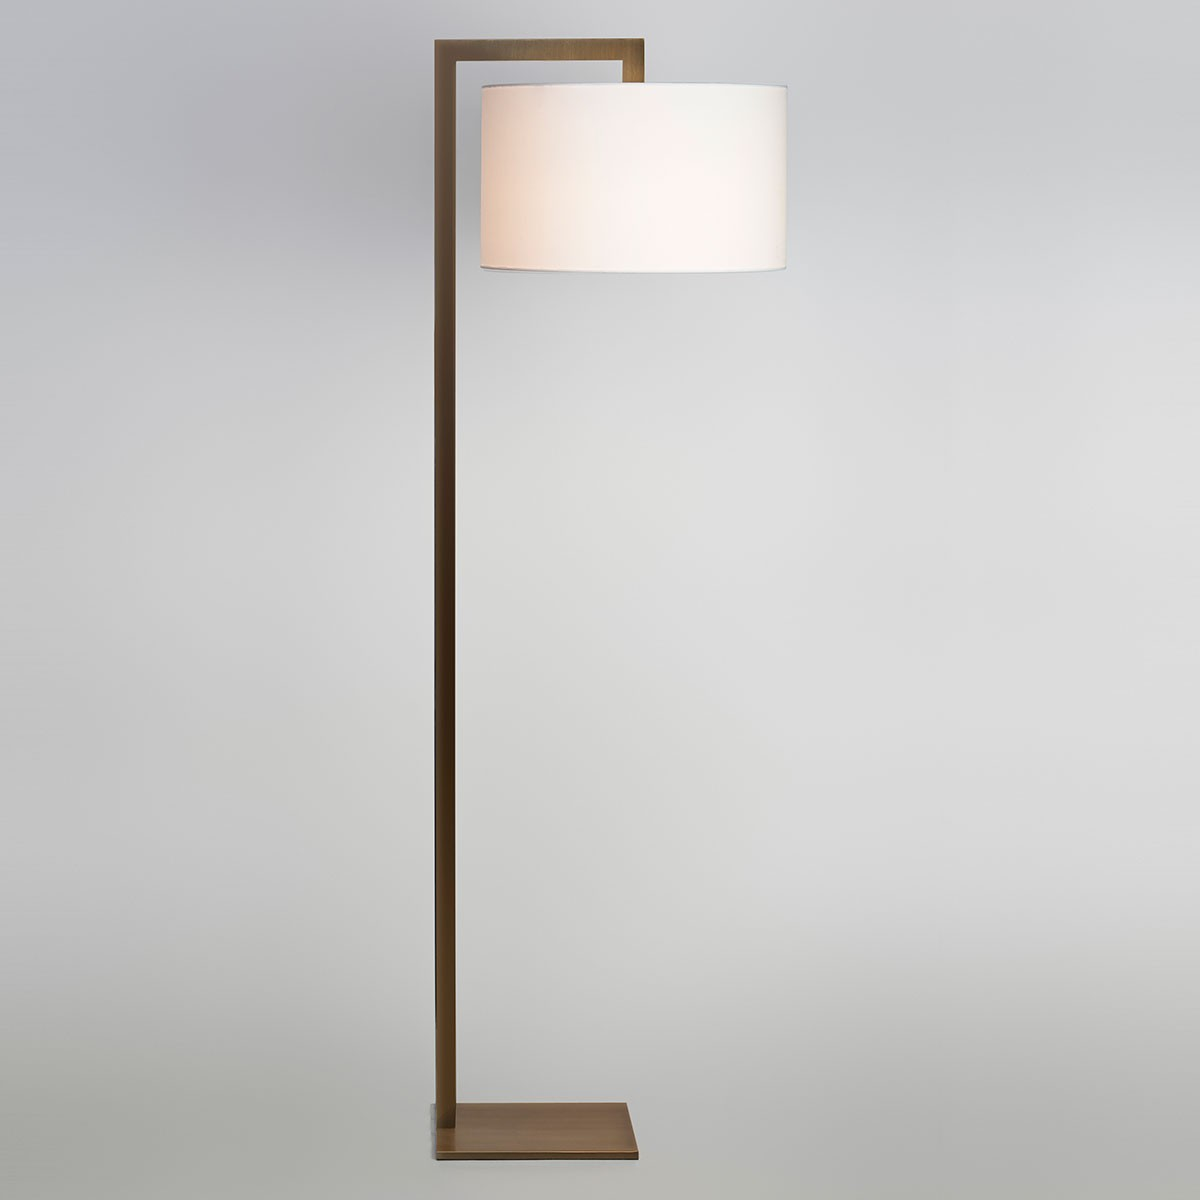 Luxury Floor Lamps at UK Electrical Supplies